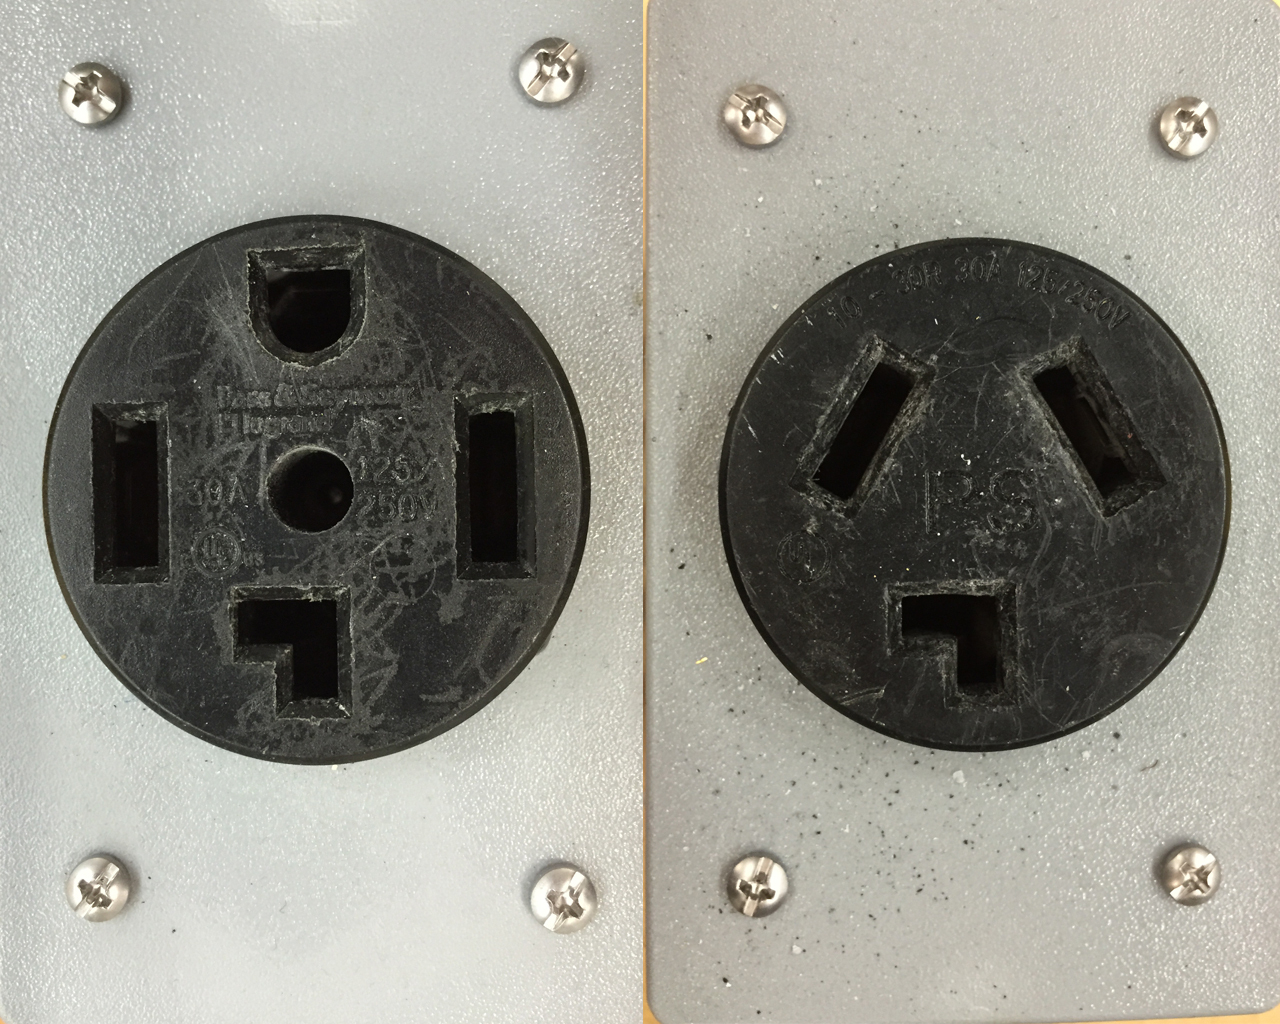 3-Prong Vs 4-Prong Dryer Outlets: What's The Difference? | Fred's - 4 Prong Dryer Outlet Wiring Diagram